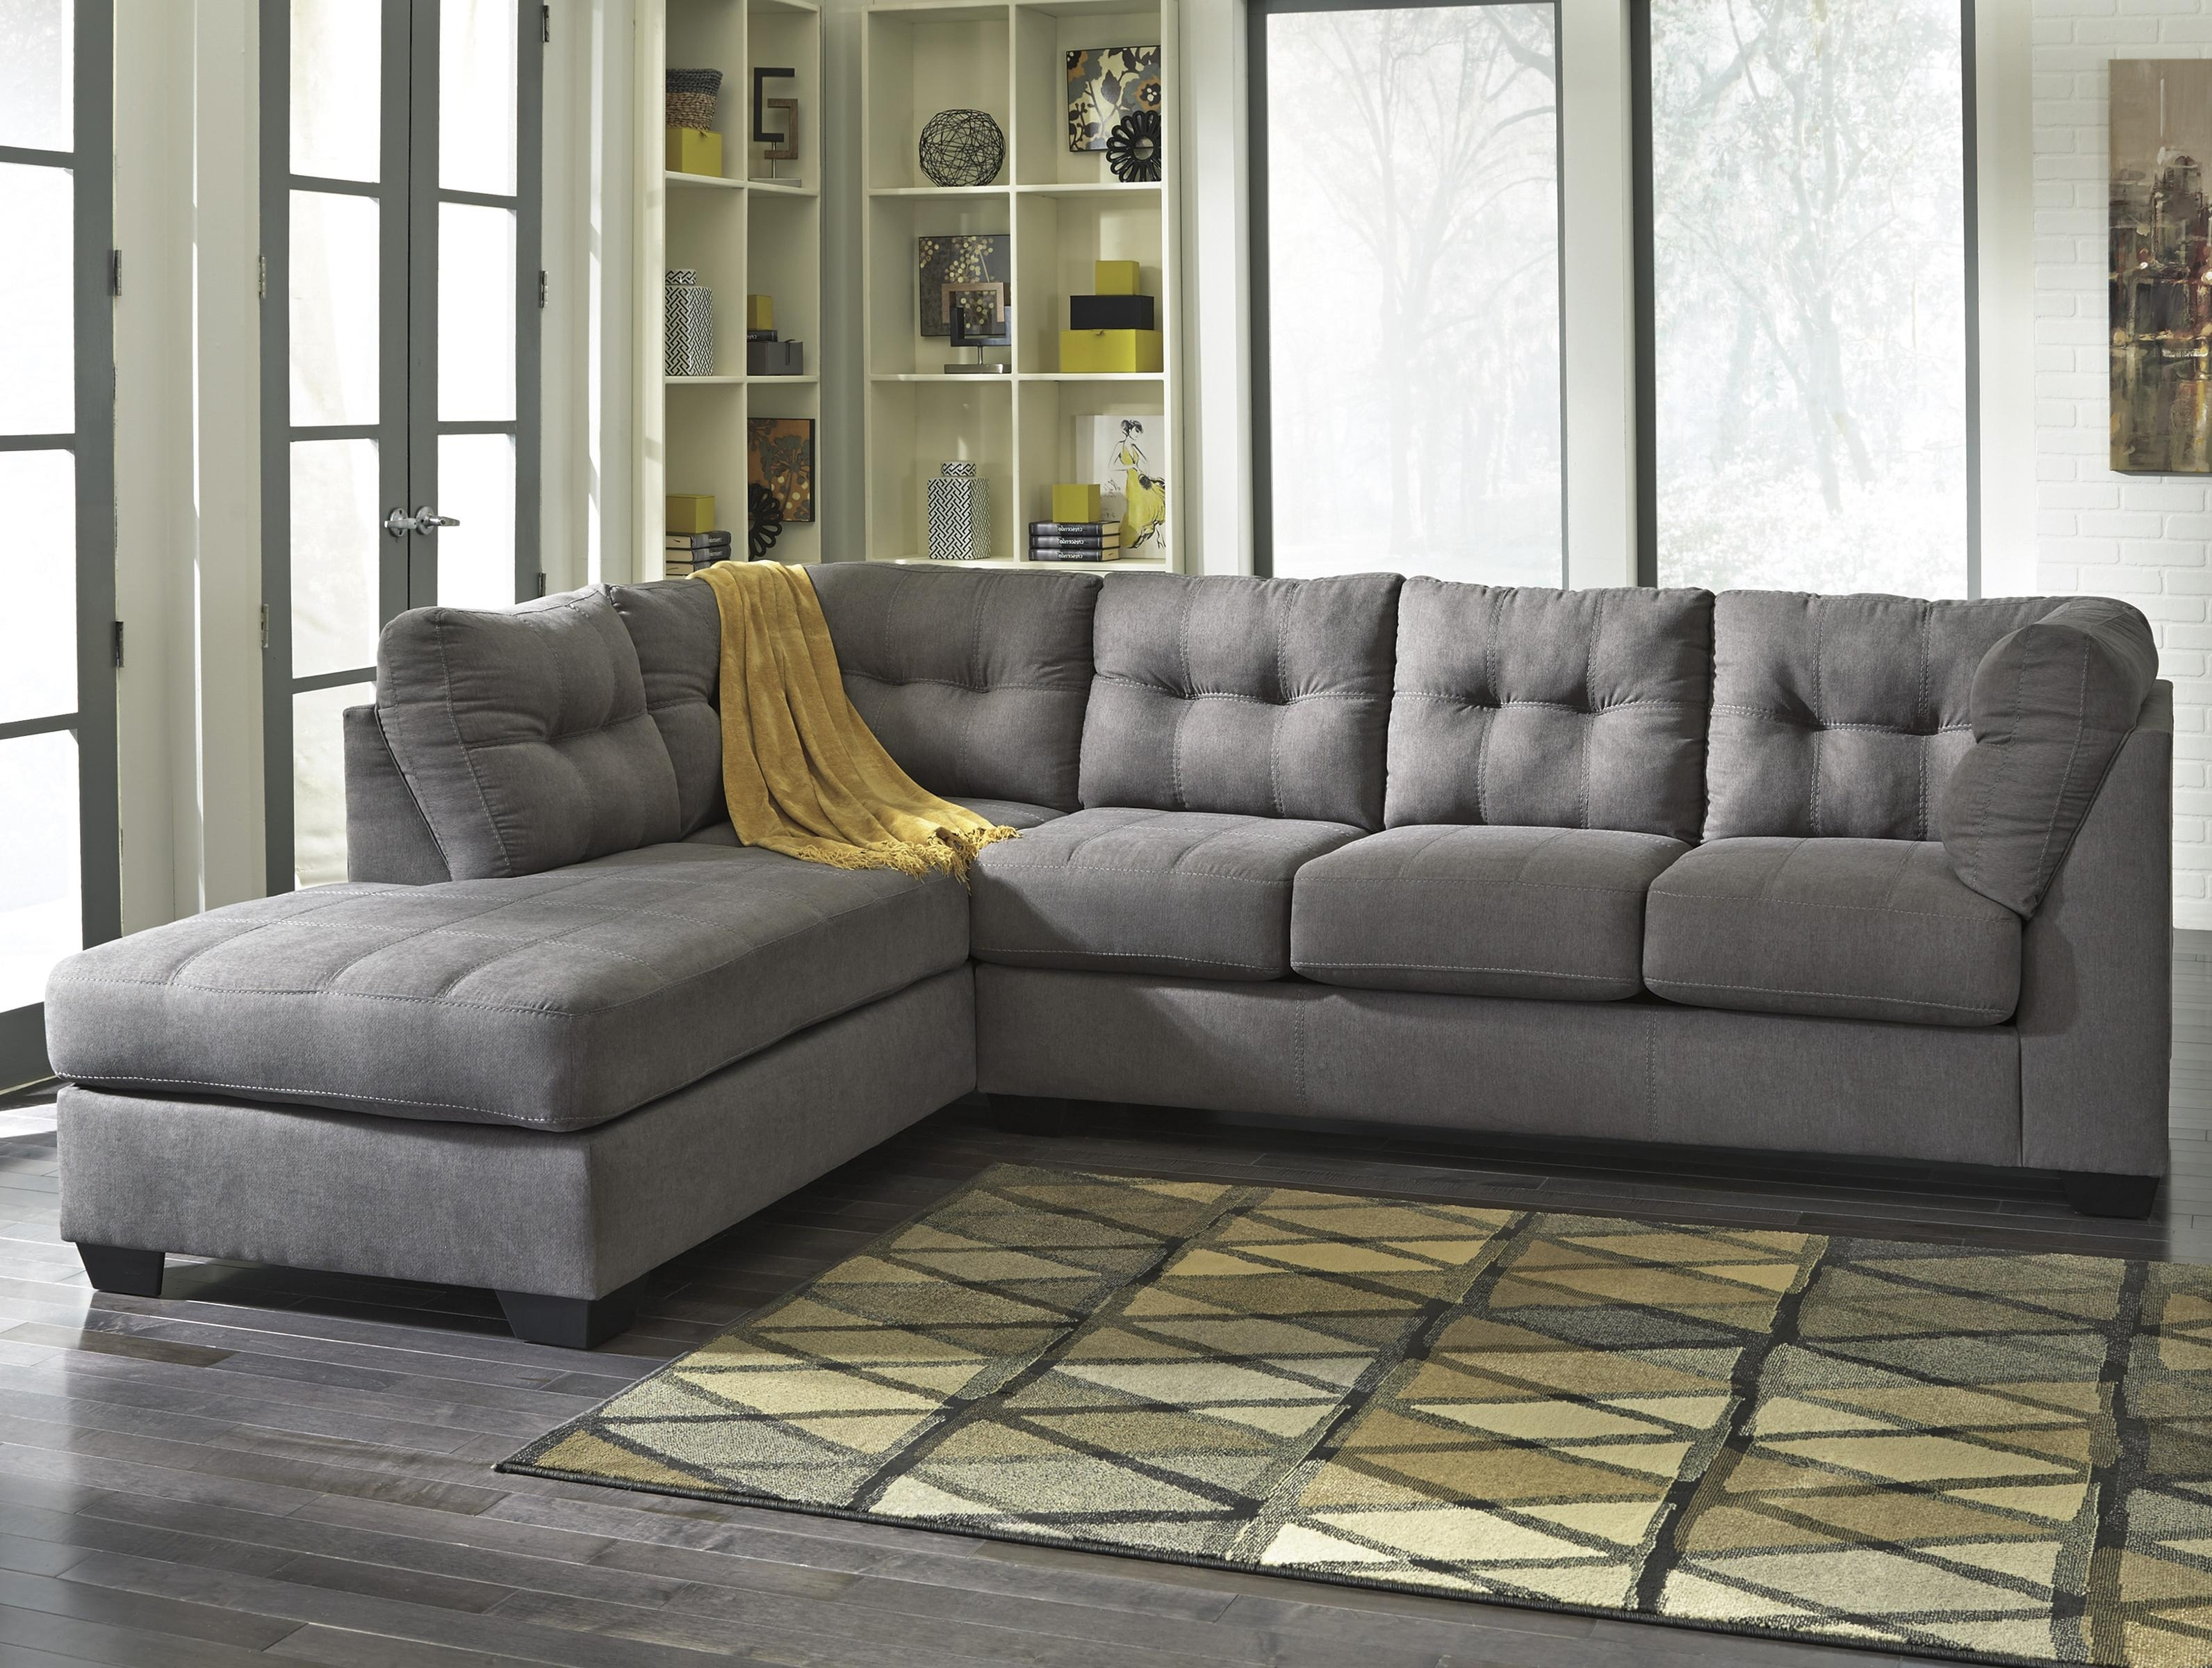 Choosing 2 Piece Sectional Sofa – Elites Home Decor For Delano 2 Piece Sectionals With Raf Oversized Chaise (Image 9 of 25)